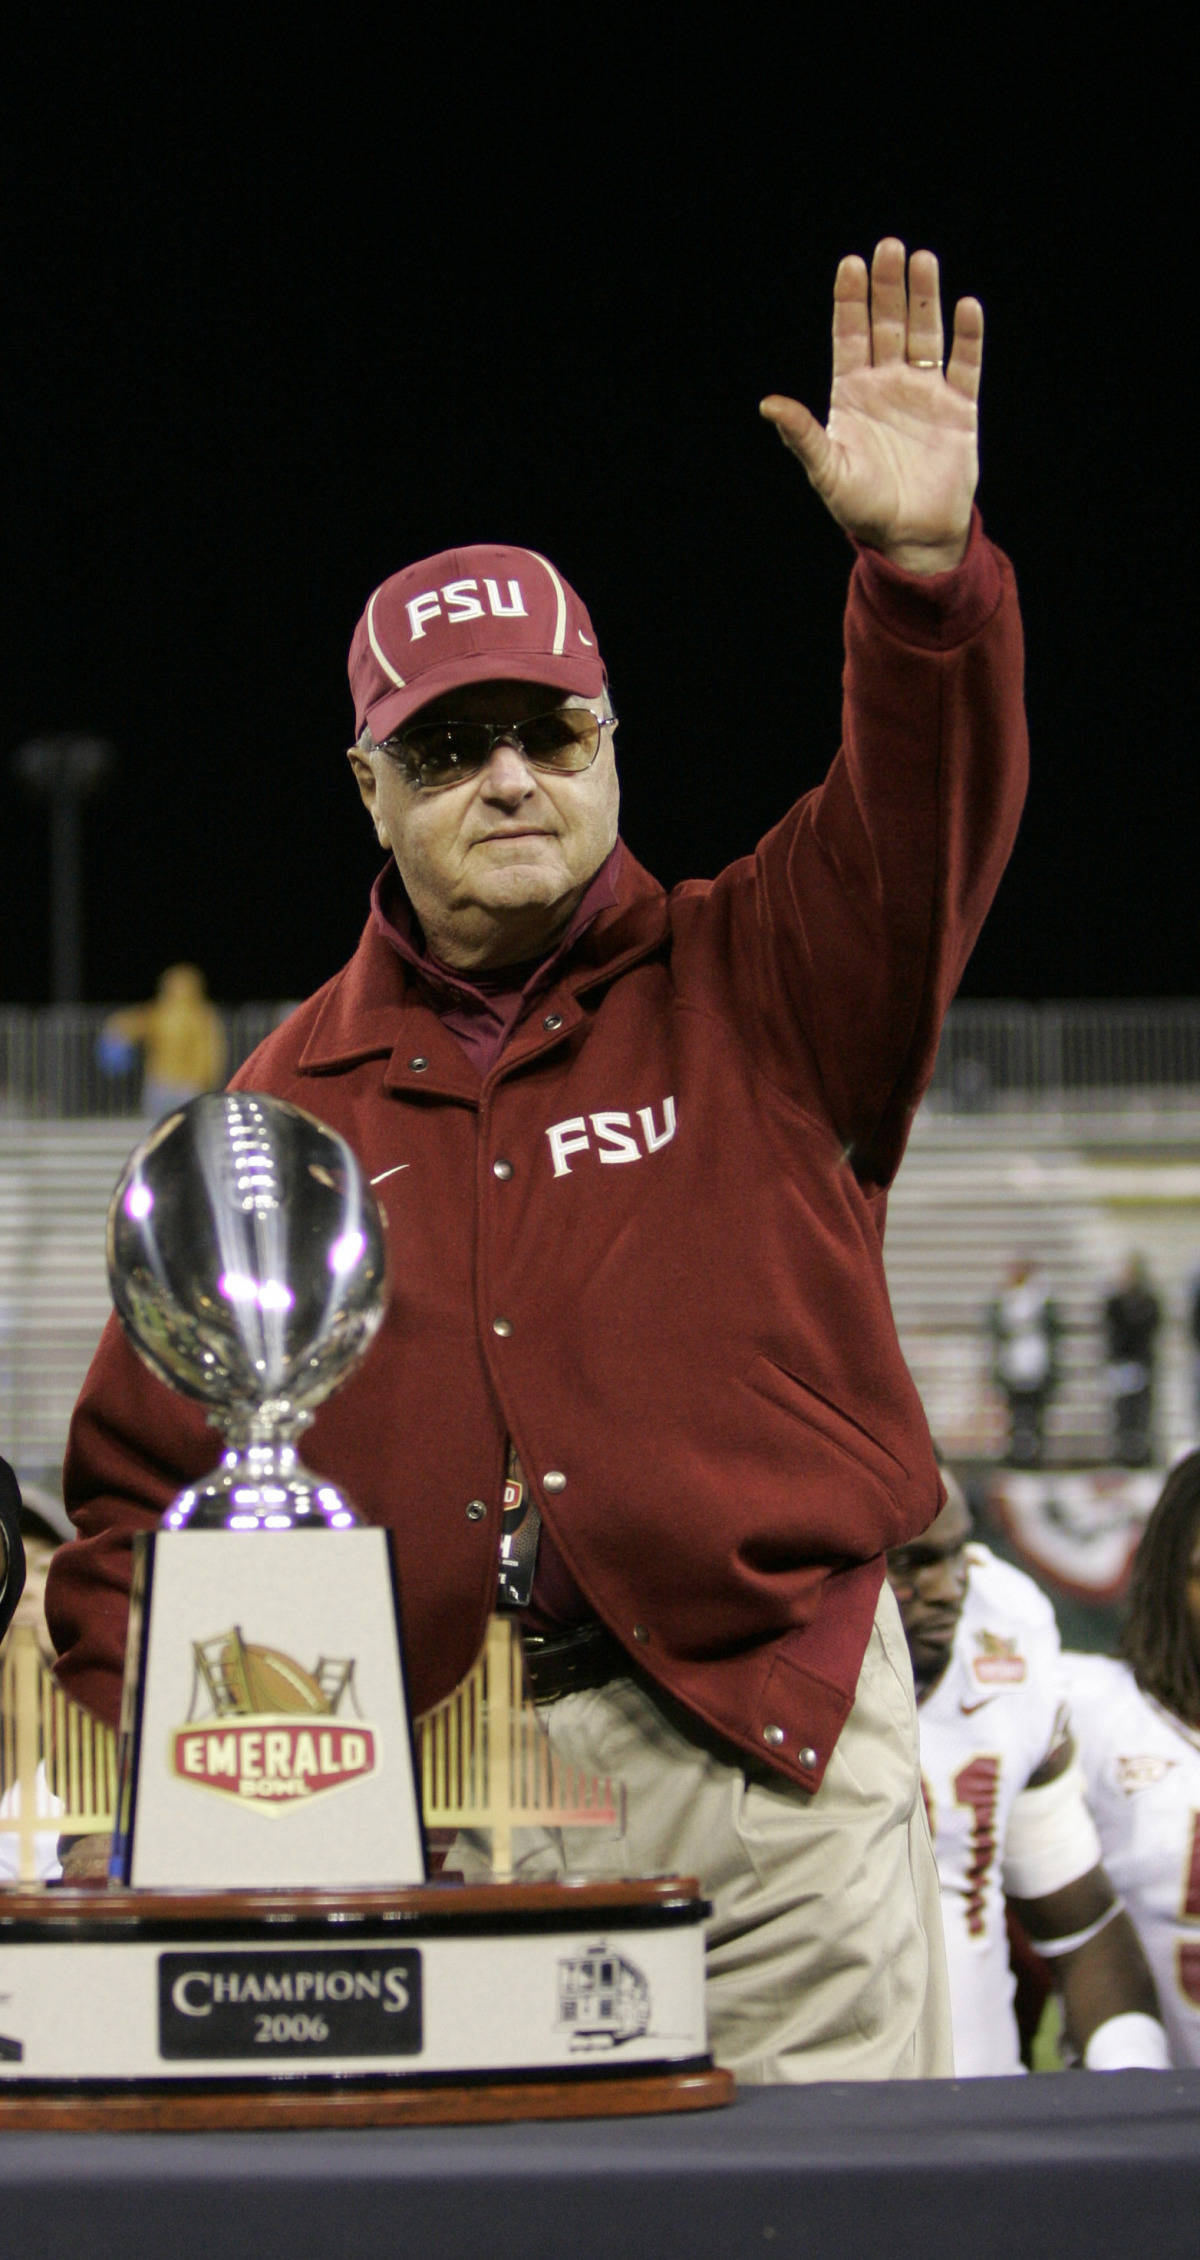 Head coach Bobby Bowden waves to the crowd as he receives the winner's trophy during the Emerald Bowl in San Francisco, Wednesday, Dec. 27, 2006. Florida State beat UCLA 44-27. (AP Photo/Marcio Jose Sanchez)